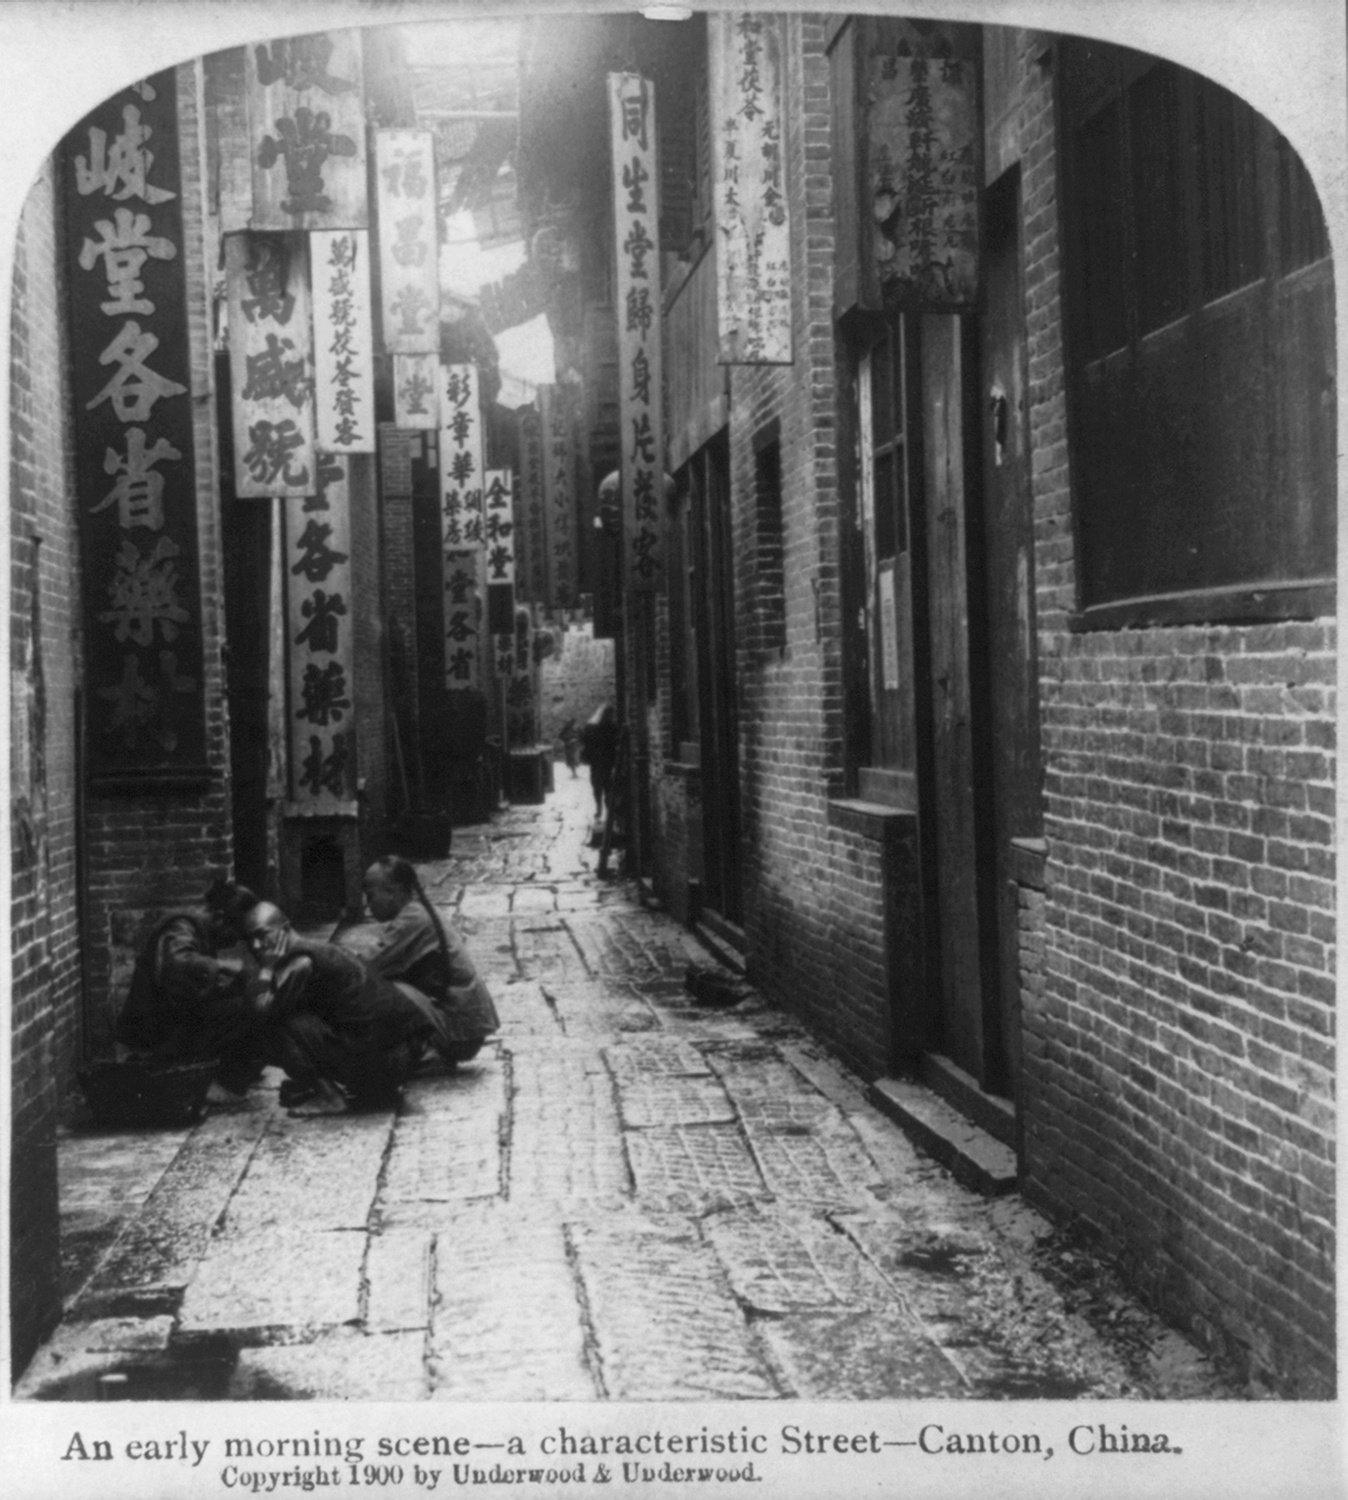 An early morning scene, Canton, China, c. 1900.